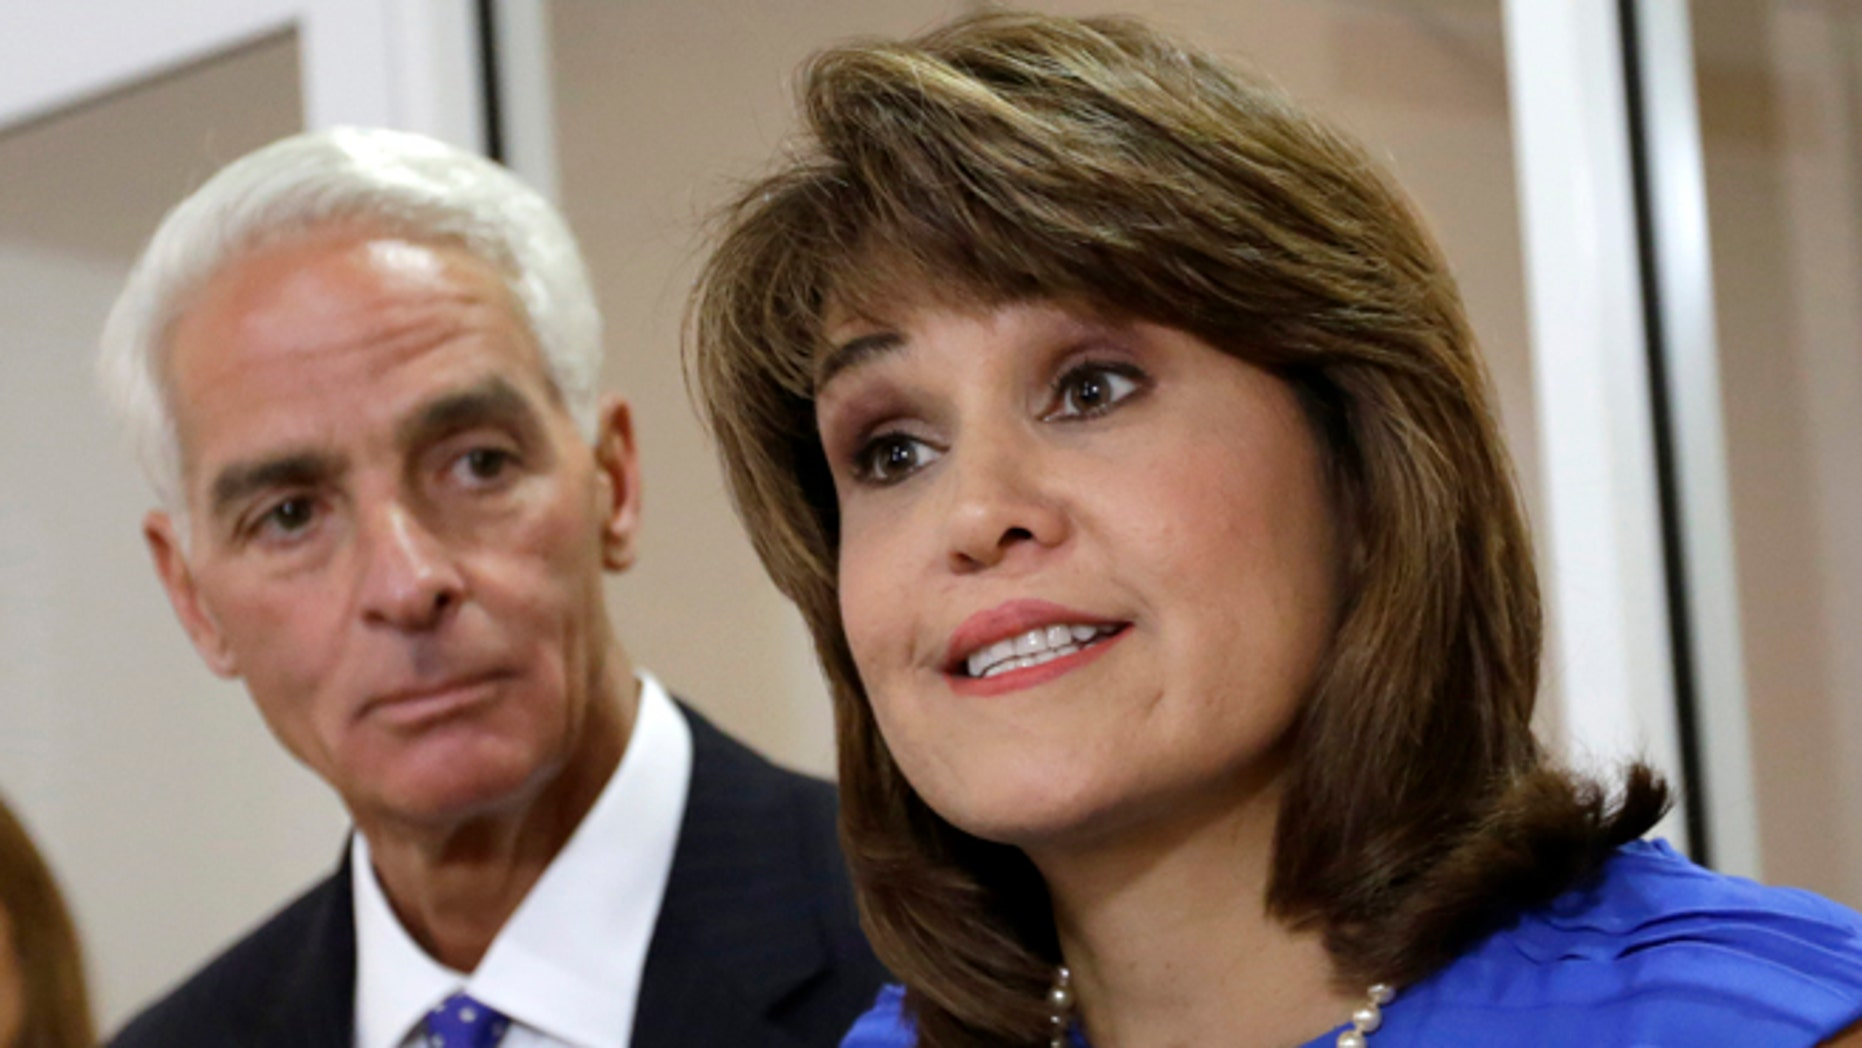 FILE - In this July 17, 2014 file photo, Annette Taddeo-Goldstein, right, talks to reporters during a news conference as former Gov. Charlie Crist listens in Miami. Crist picked former congressional candidate and Miami-Dade County Democratic Party chairwoman Annette Taddeo-Goldstein as his running mate.  After years of running few Latinos for statewide posts, Democrats are building a bench that better reflects the support they have in the Hispanic community: more than twice as many Hispanics identify as Democrats than Republicans nationally, according to polls. This year they are showcasing this bench in key states that not only have large Hispanic electorates but enough electoral votes to swing presidential elections. The shift is crucial for a party that often fails to get its Hispanic supporters to the polls. (AP Photo/Alan Diaz)